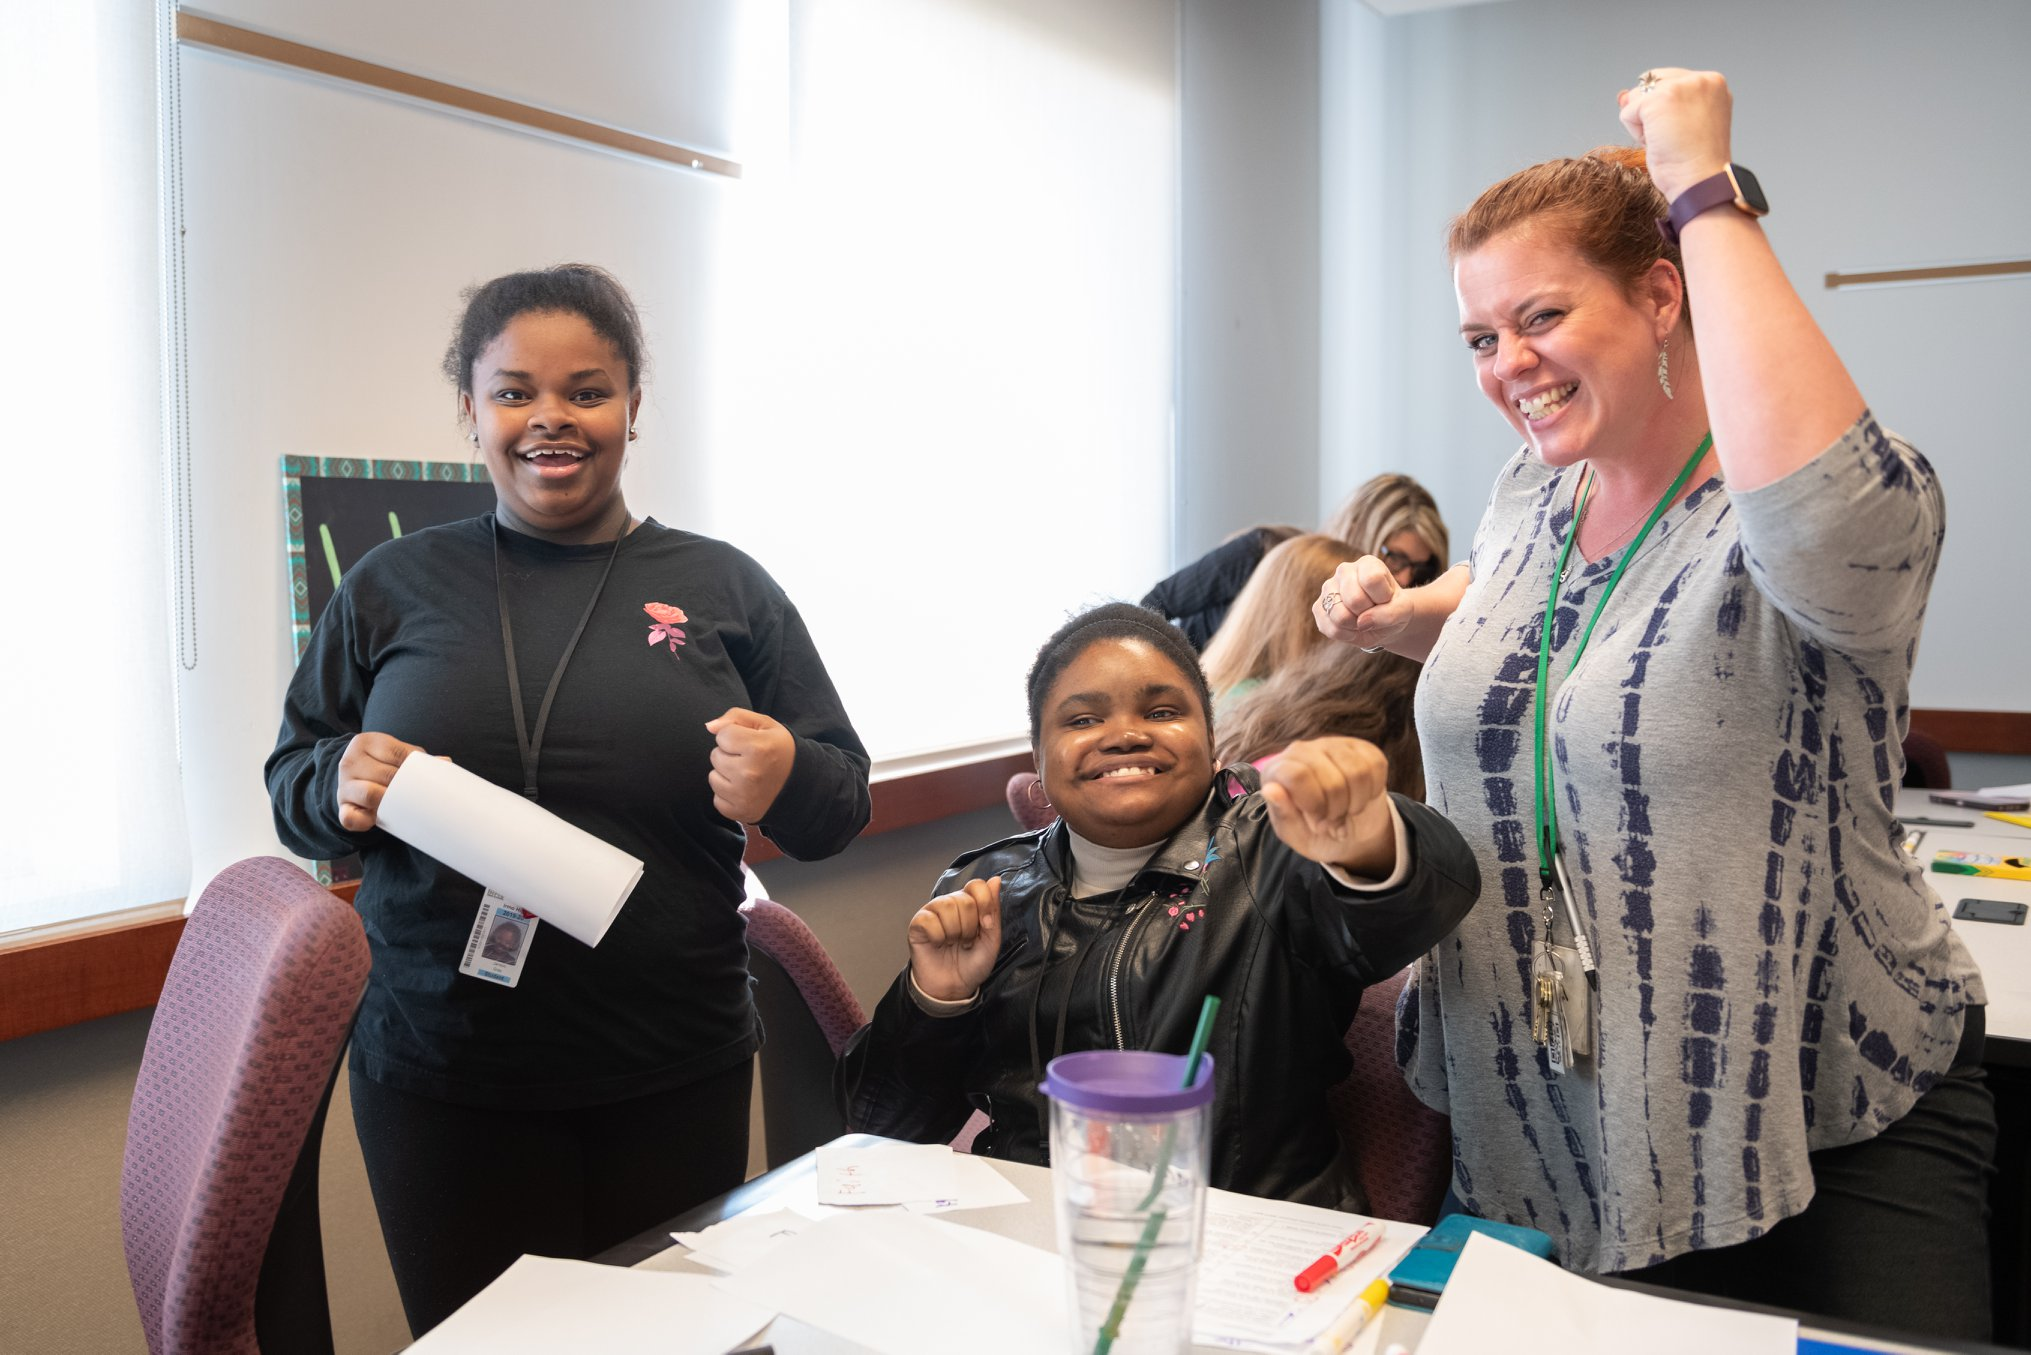 Two young Black women with disabilities smile and raise their fists in excitement while the teacher next to them does the same.